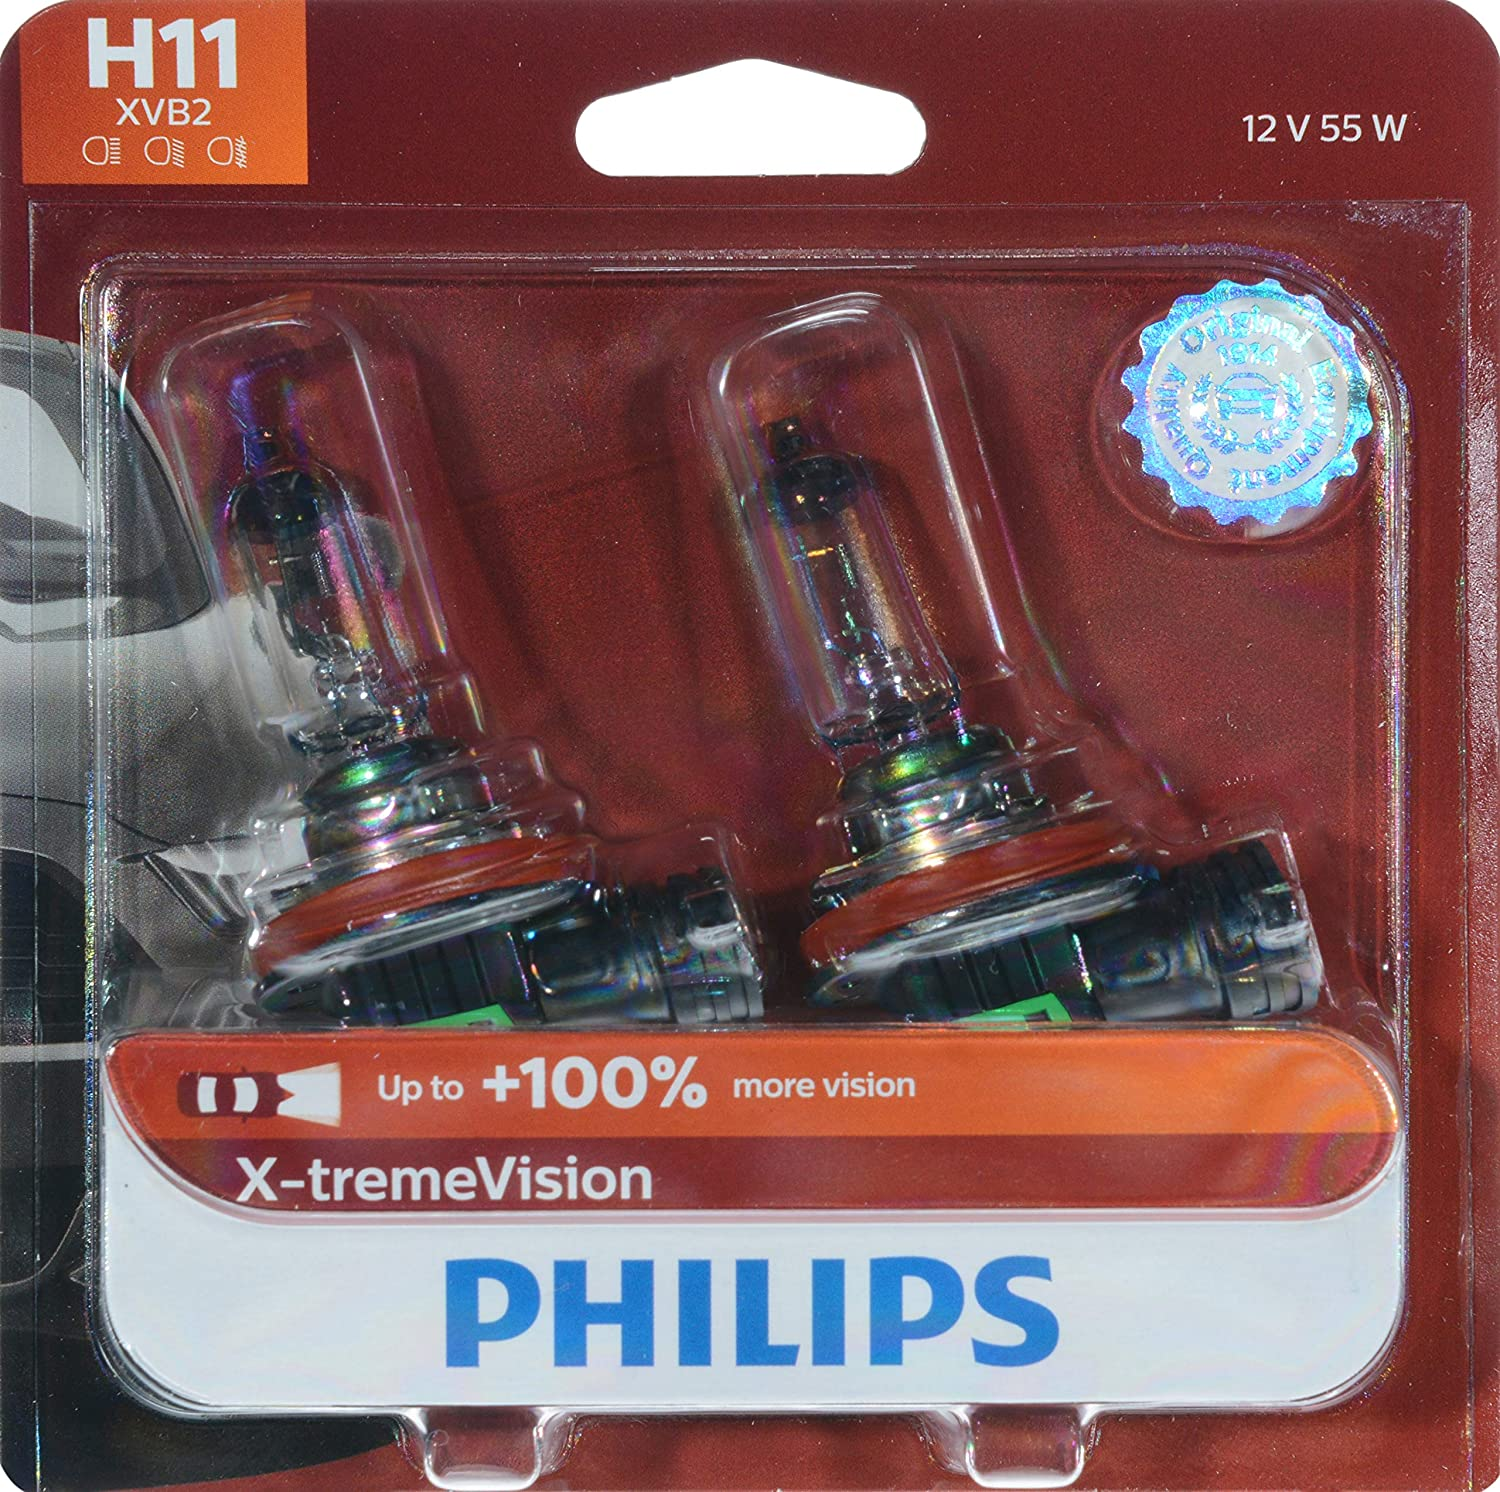 Philips H11 X-tremeVision Upgrade Headlight Bulb with up to 100% More Vision